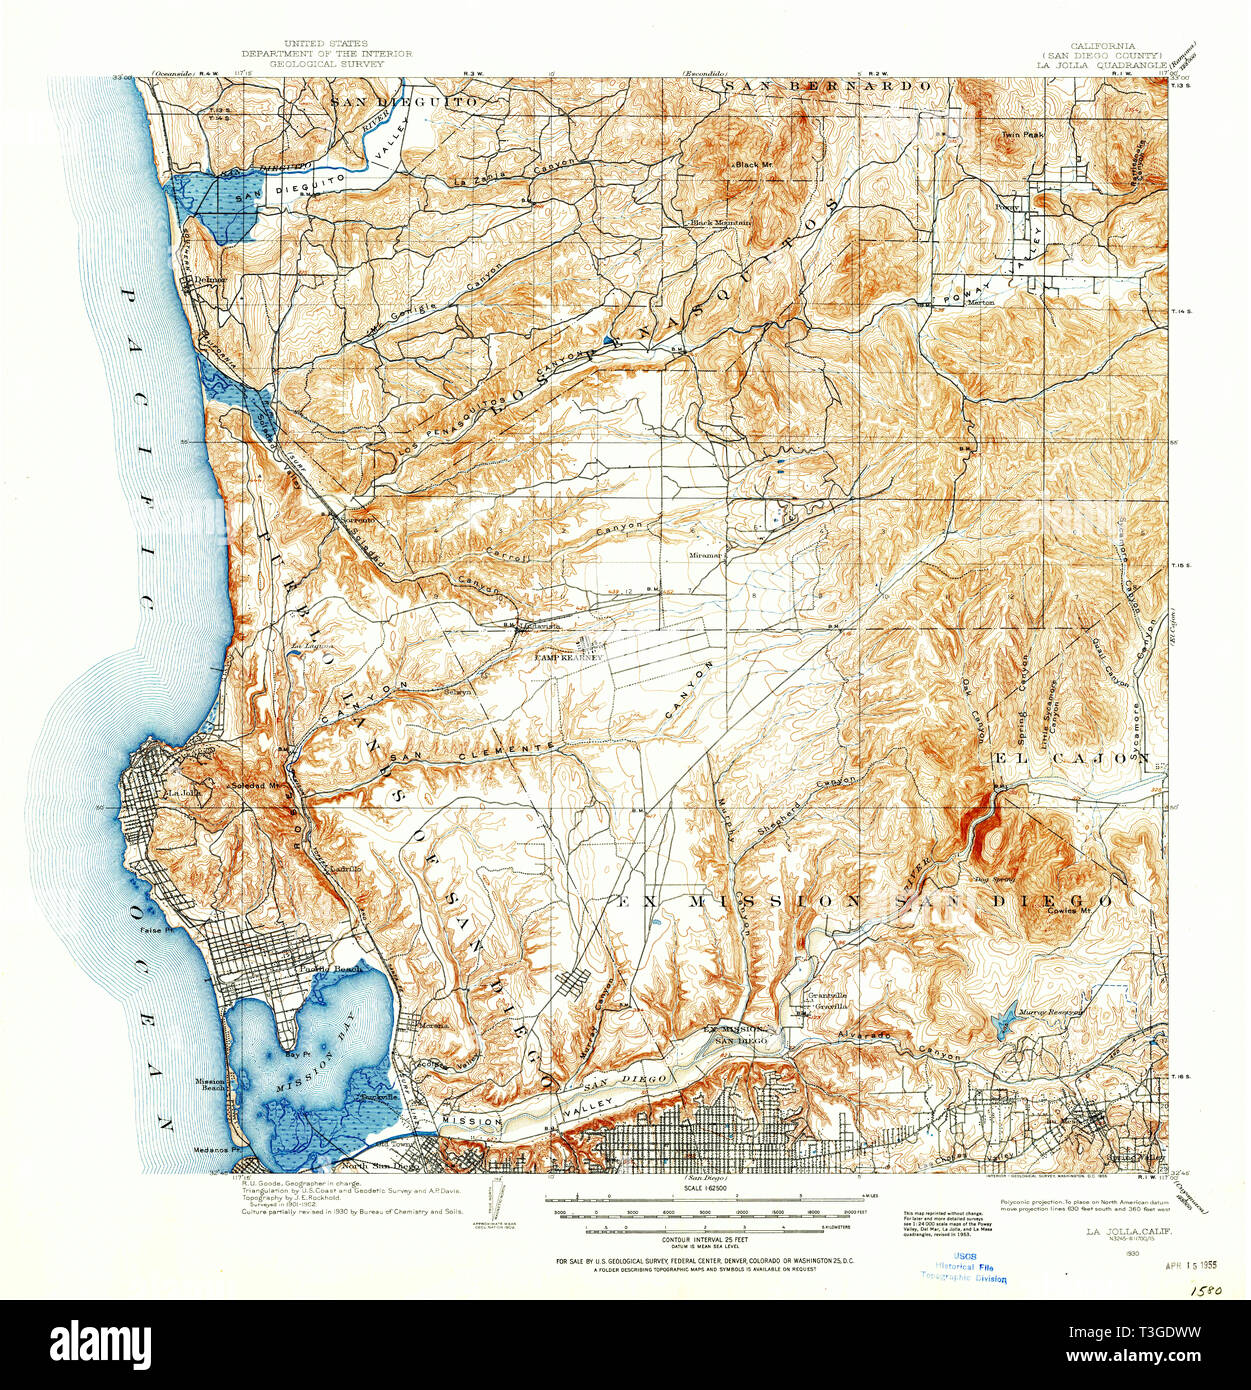 Map Of California La.Usgs Topo Map California Ca La Jolla 297916 1930 62500 Restoration